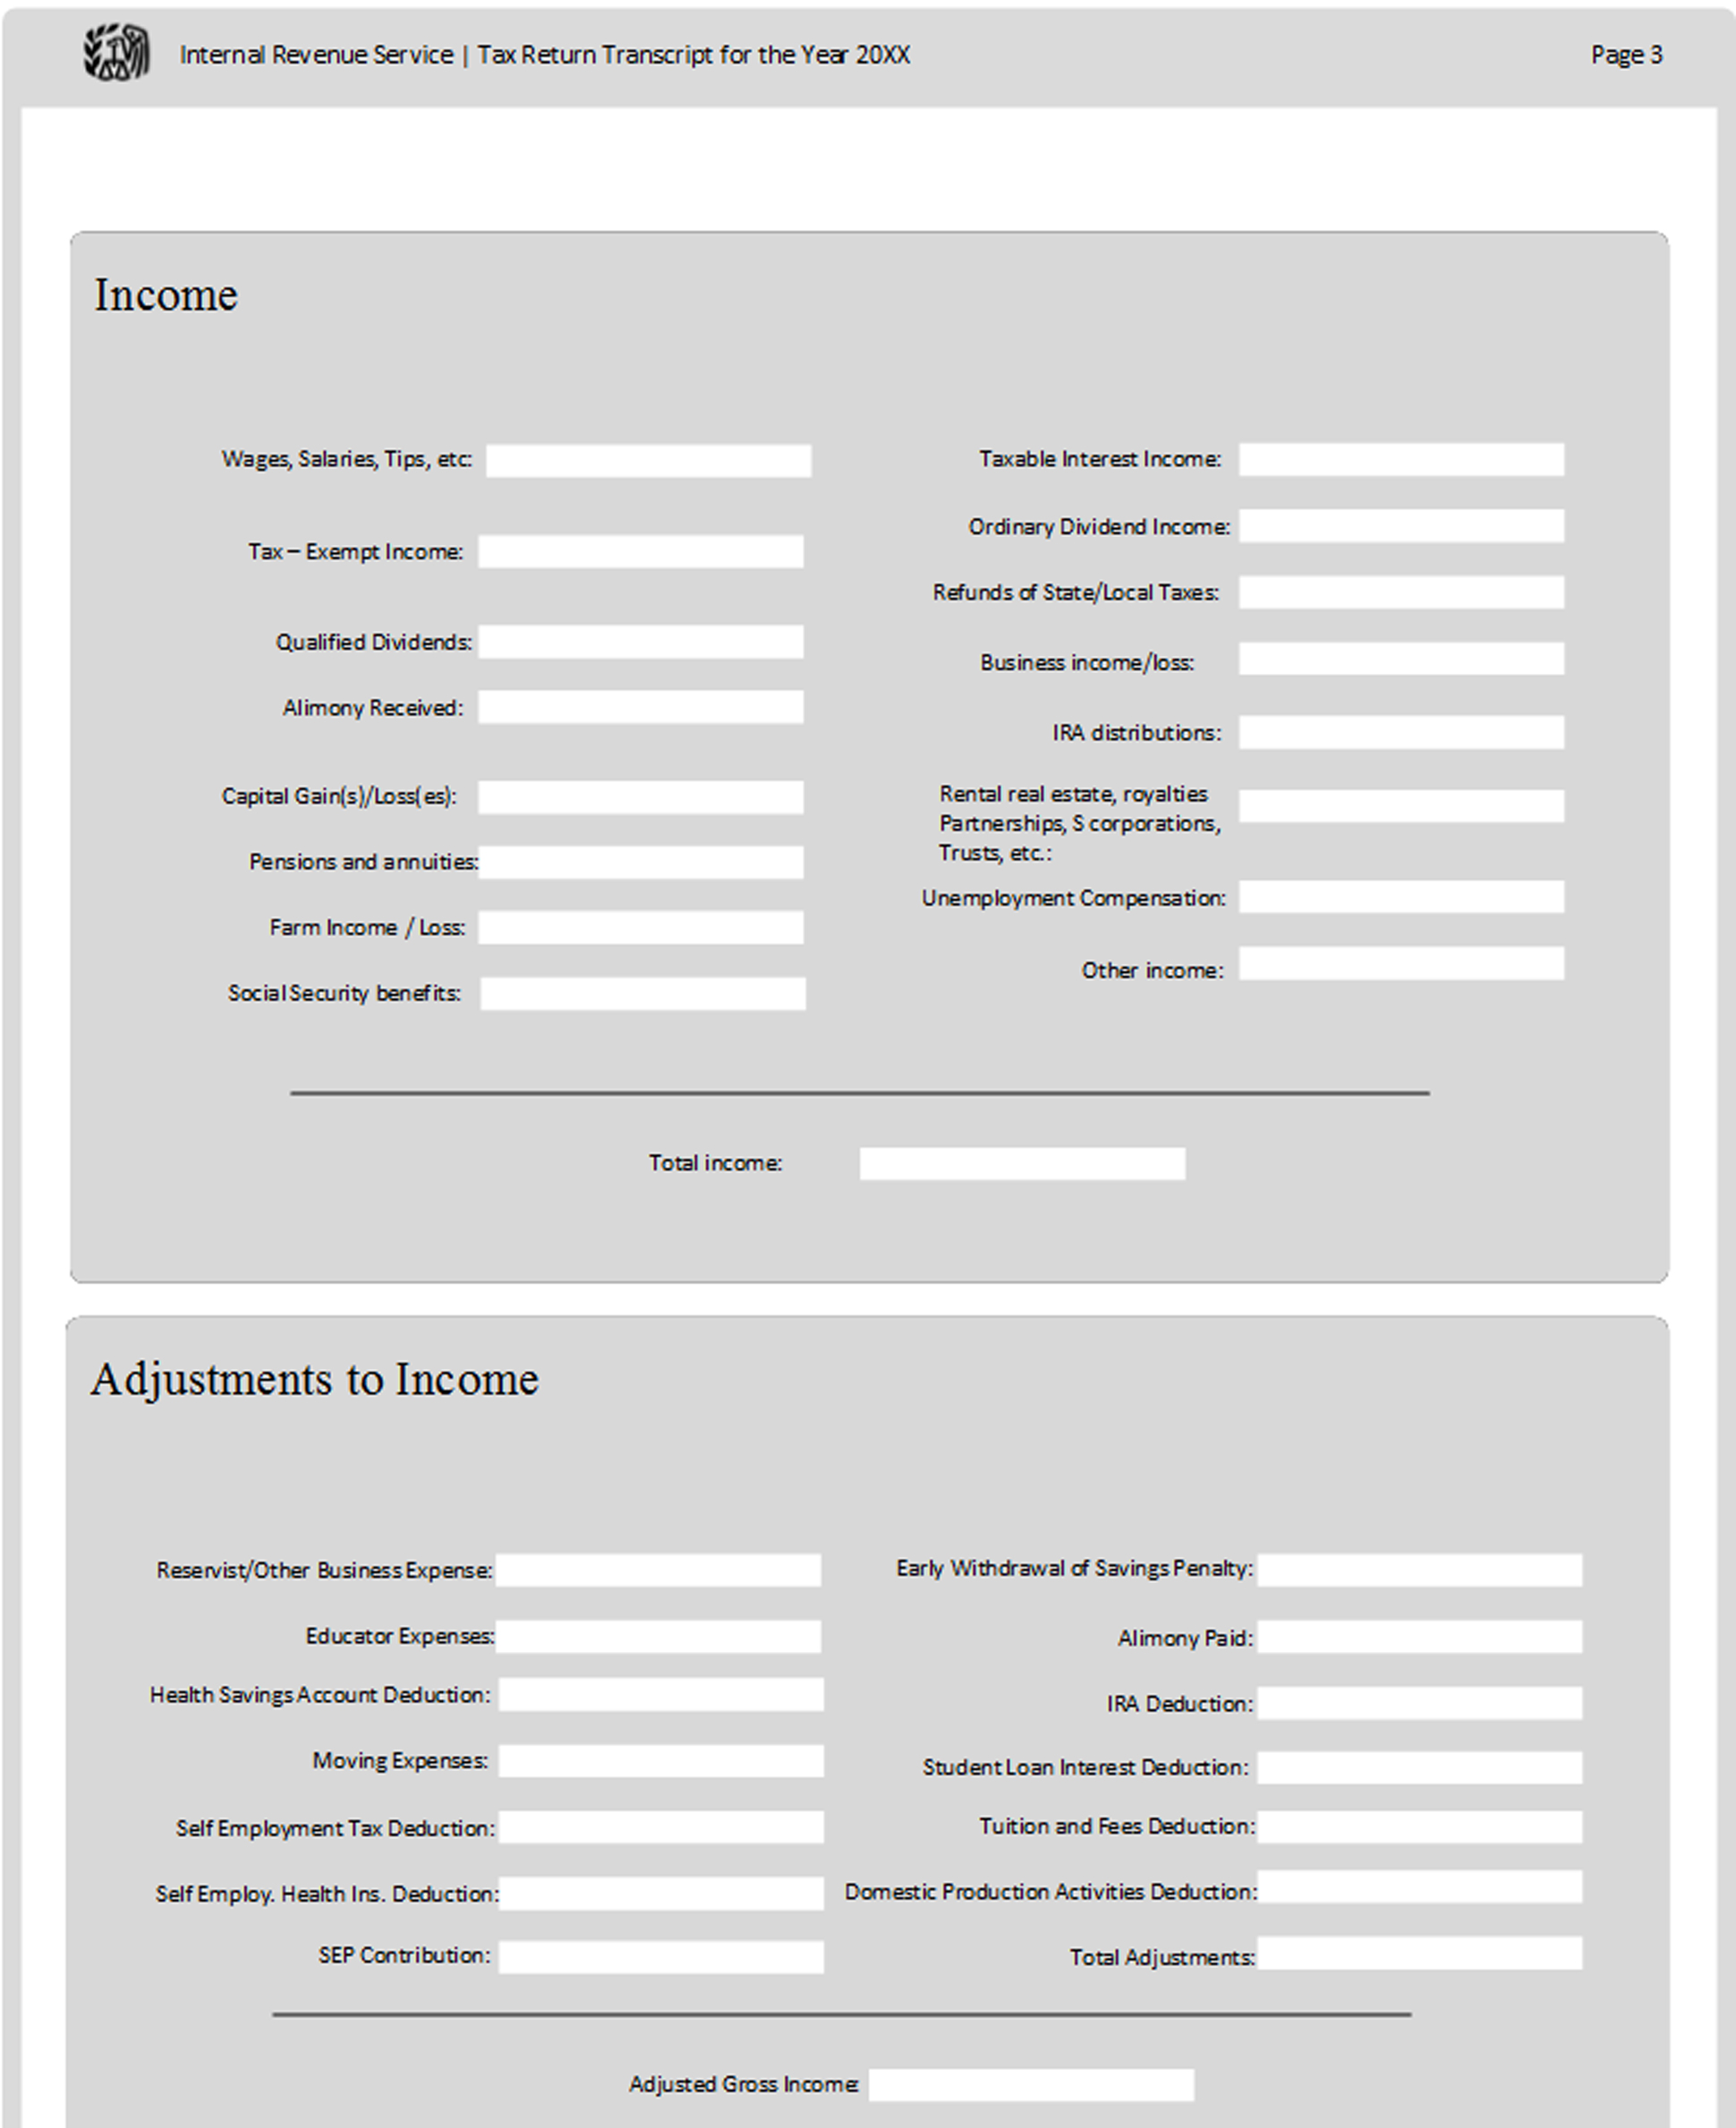 A page from a tax design challenge submission. An income form and adjustment to income form are shown.